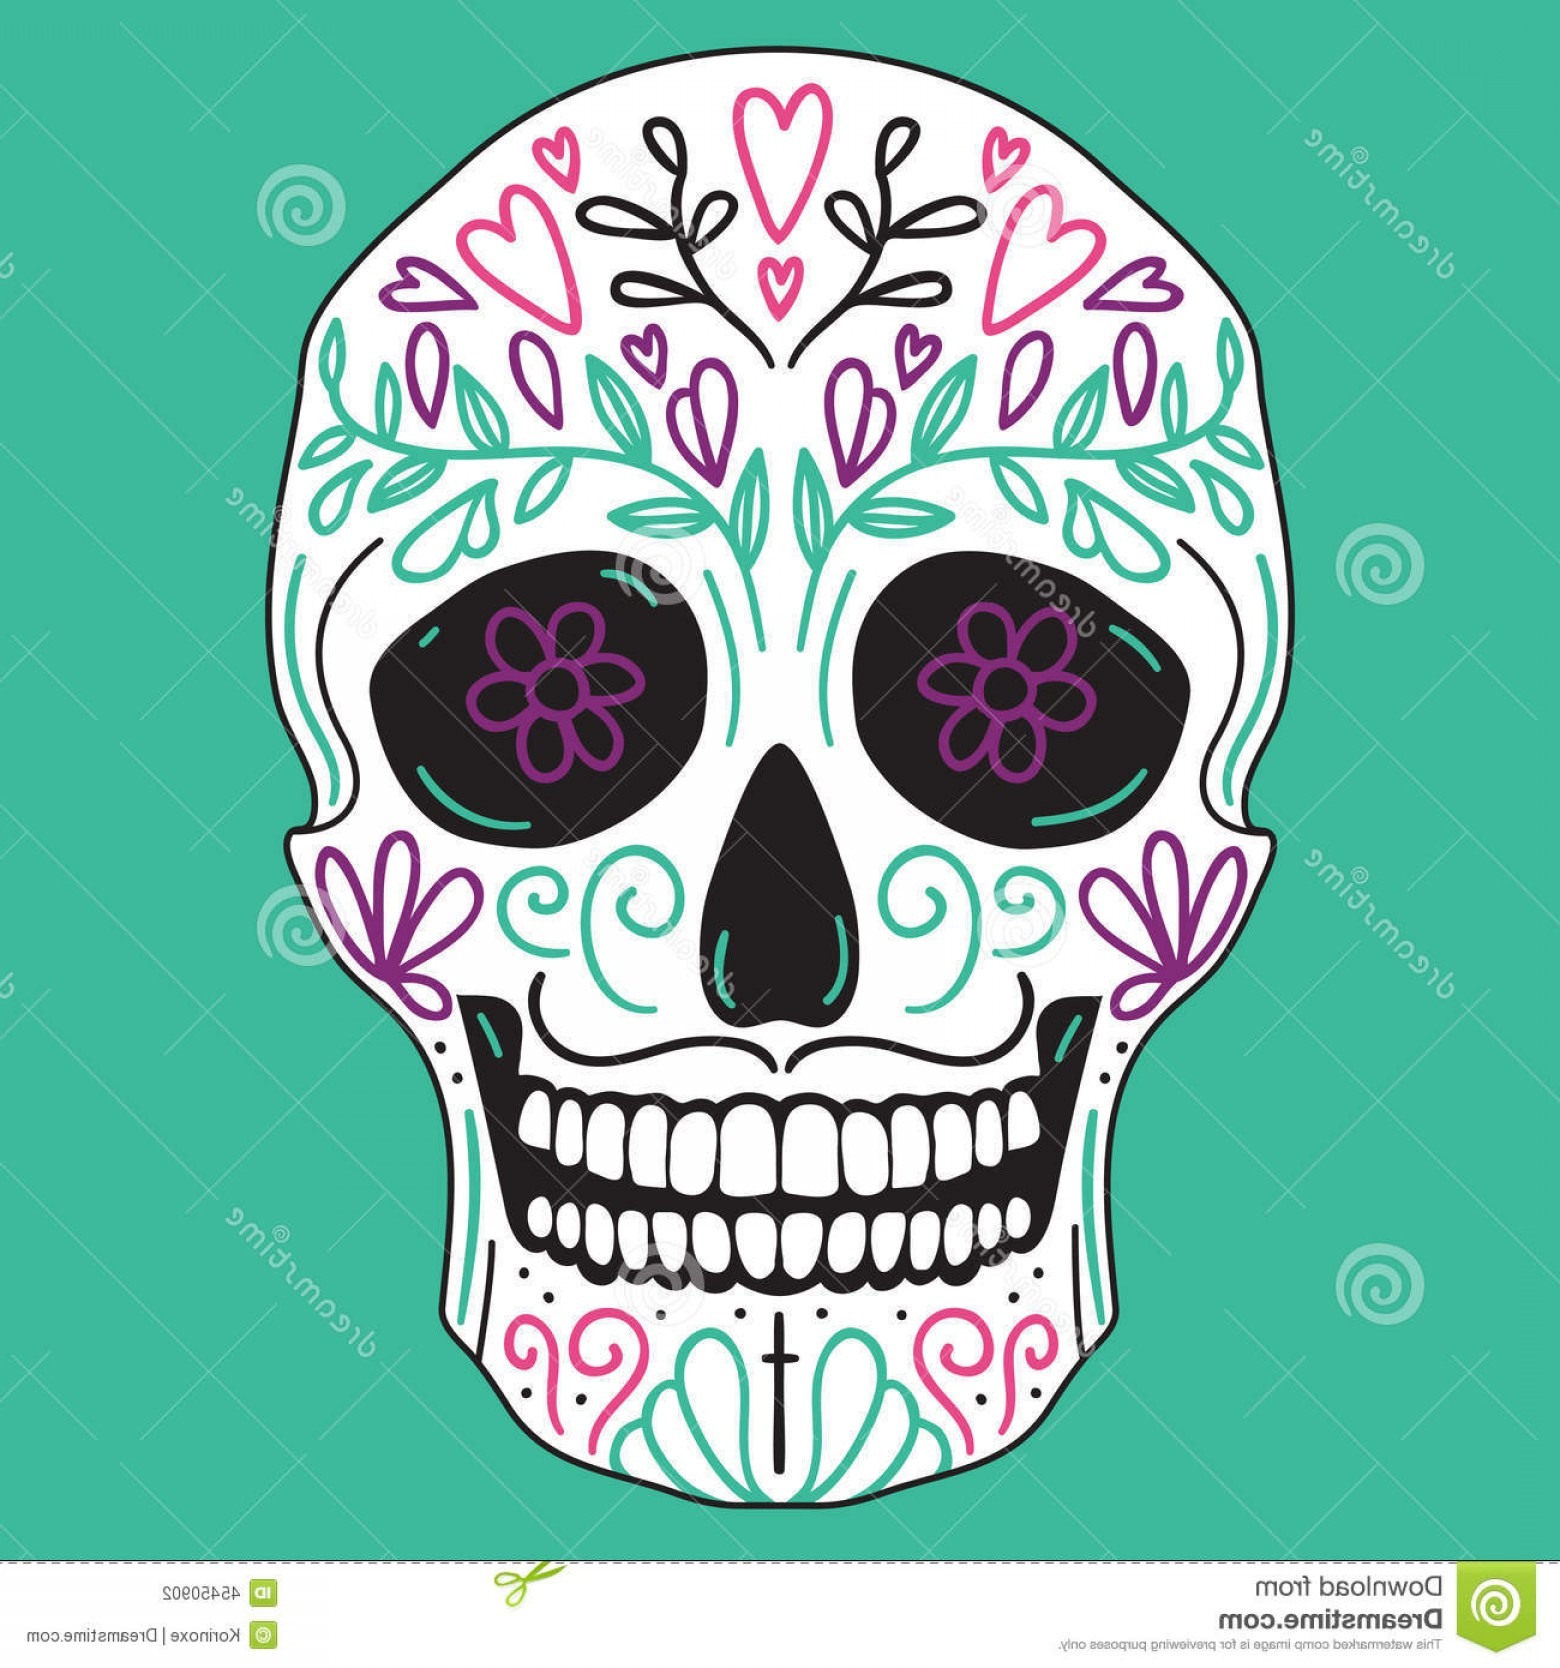 His And Hers Skulls Vector: Stock Illustration Mexican Simple Sugar Skull Vector White Floral Decoration Turquoise Background Image